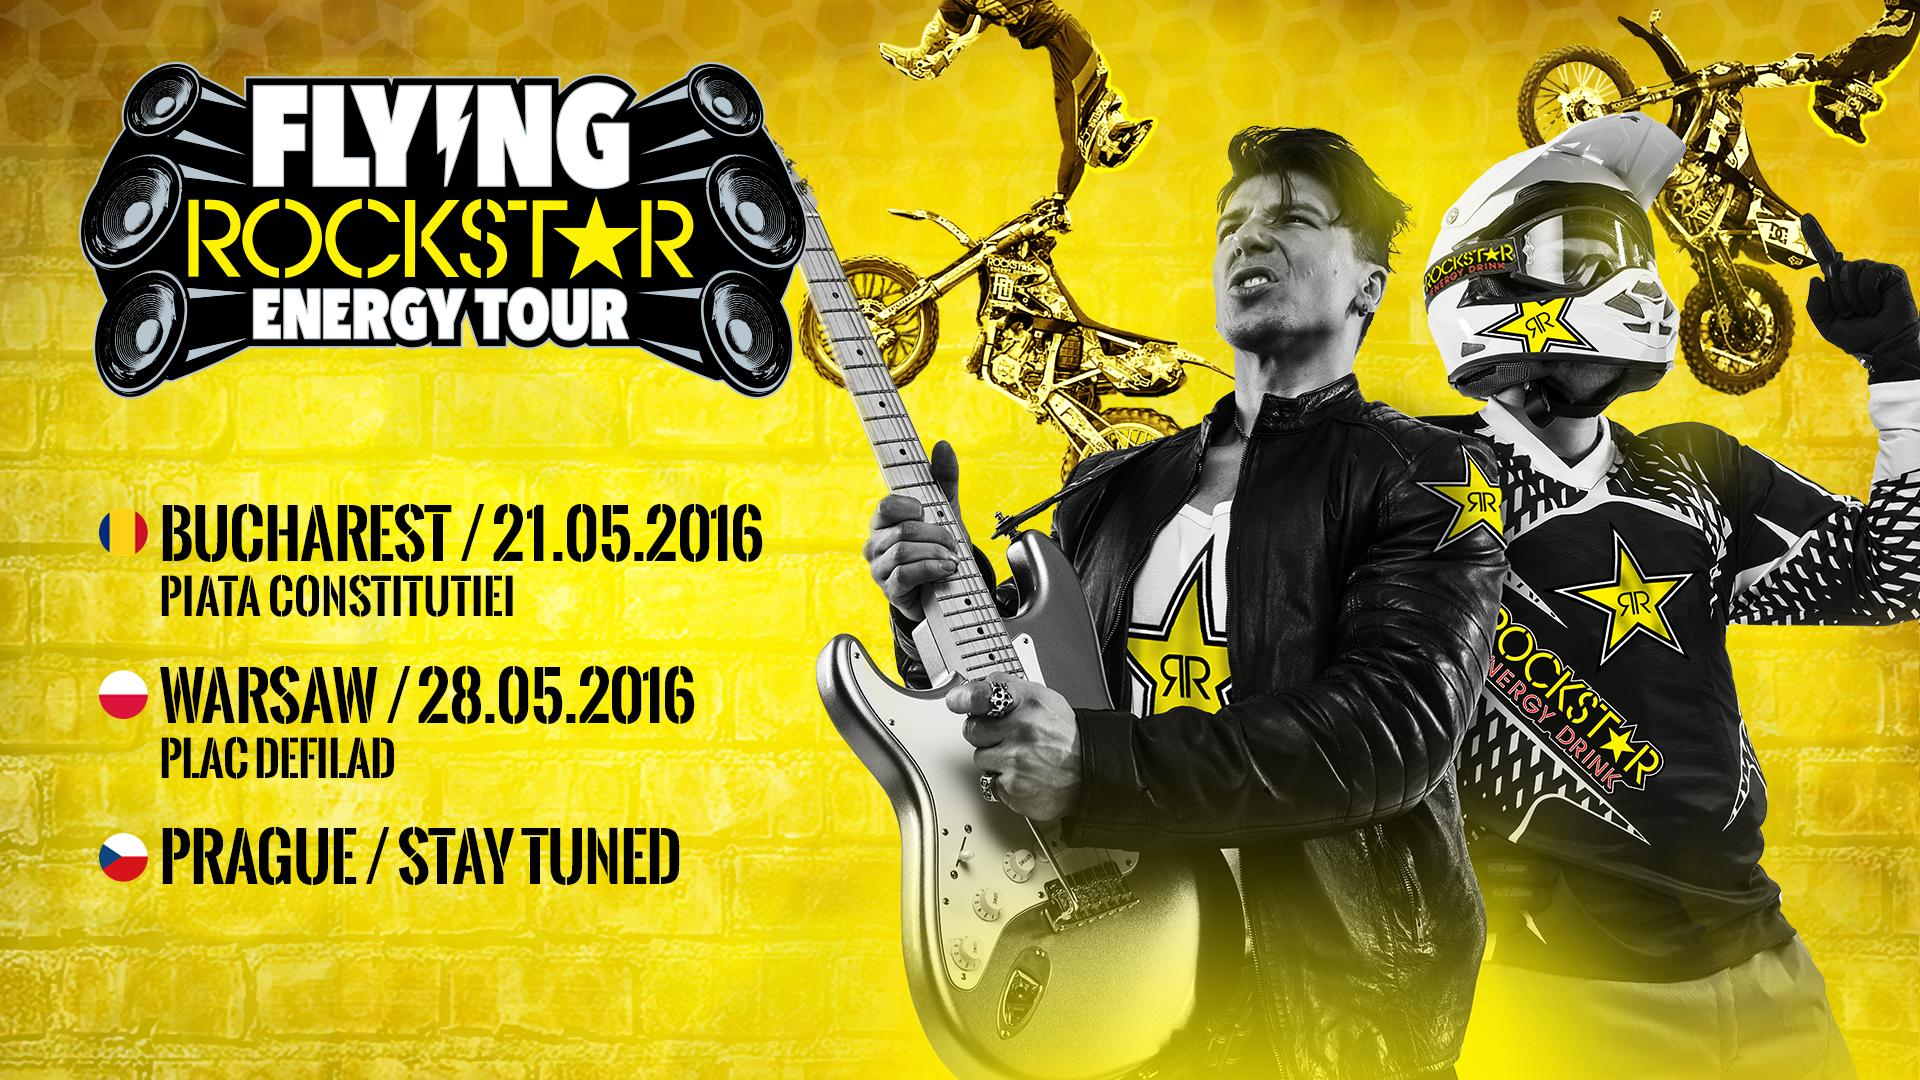 Flying Rockstar Energy Tour 2016 - Romania